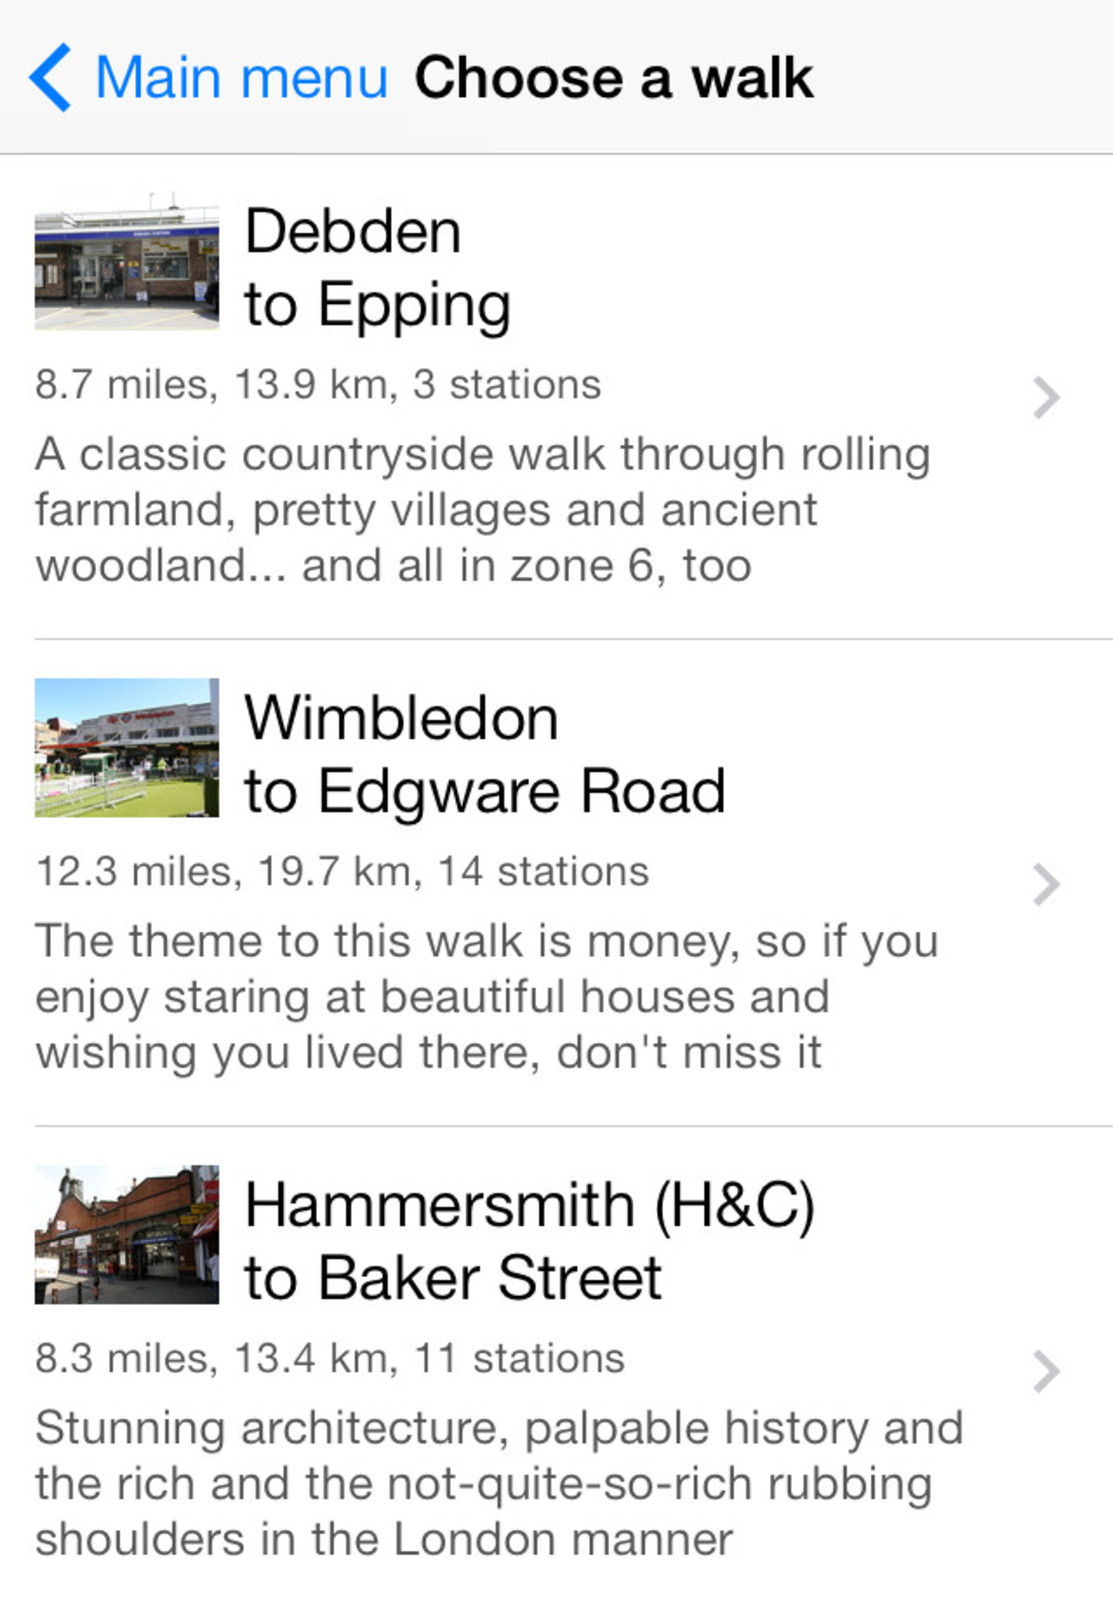 A list of recommended walks in the Tubewalker iPhone application